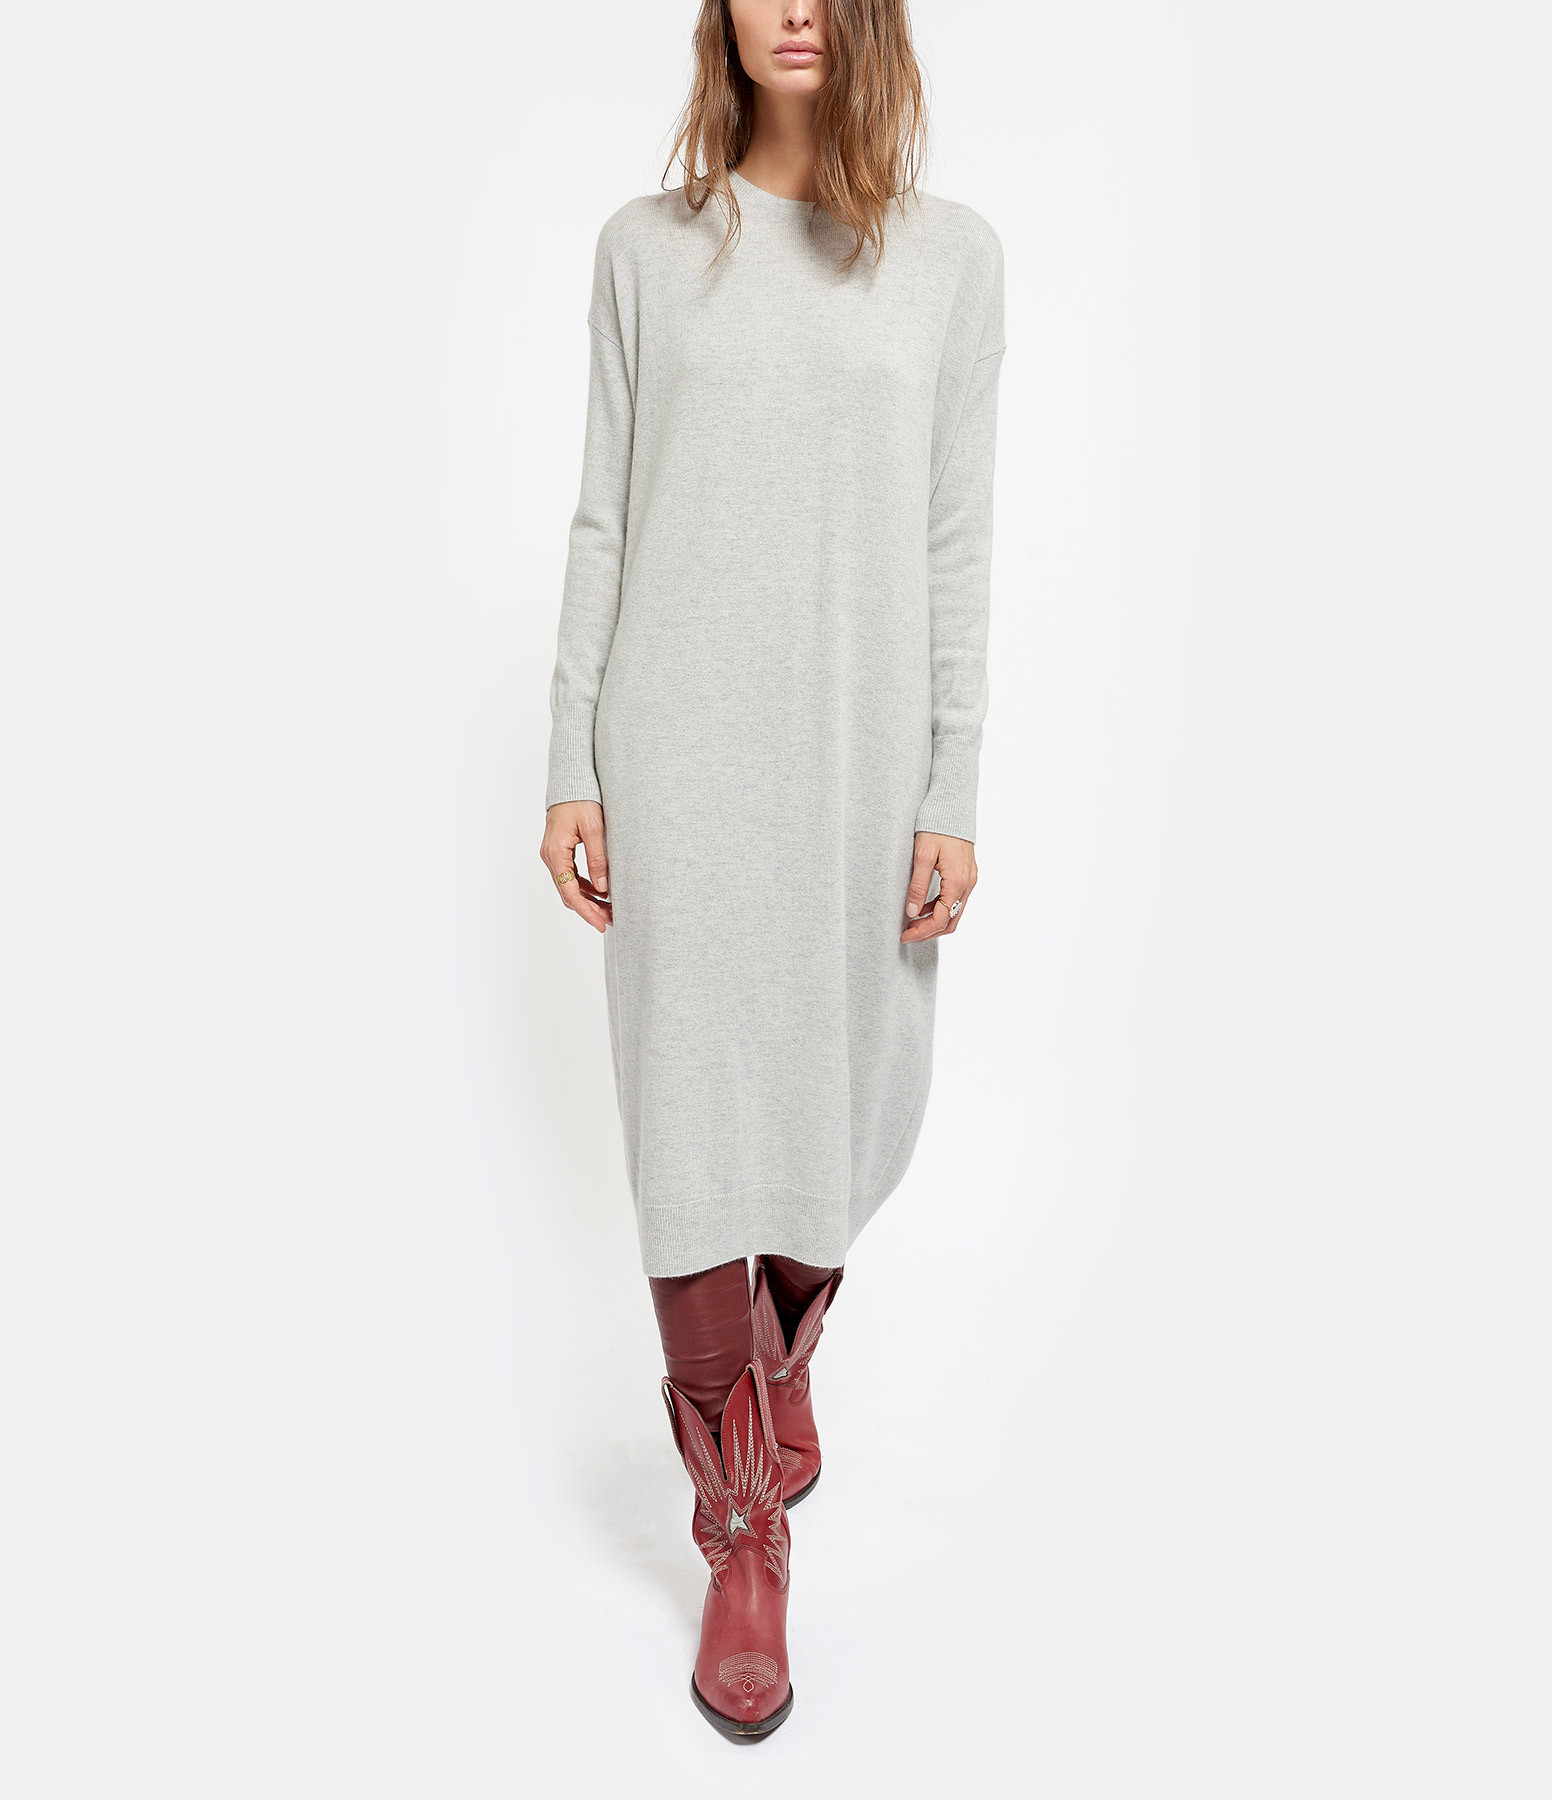 CT PLAGE - Robe Pull Laine Raccoon Gris Clair